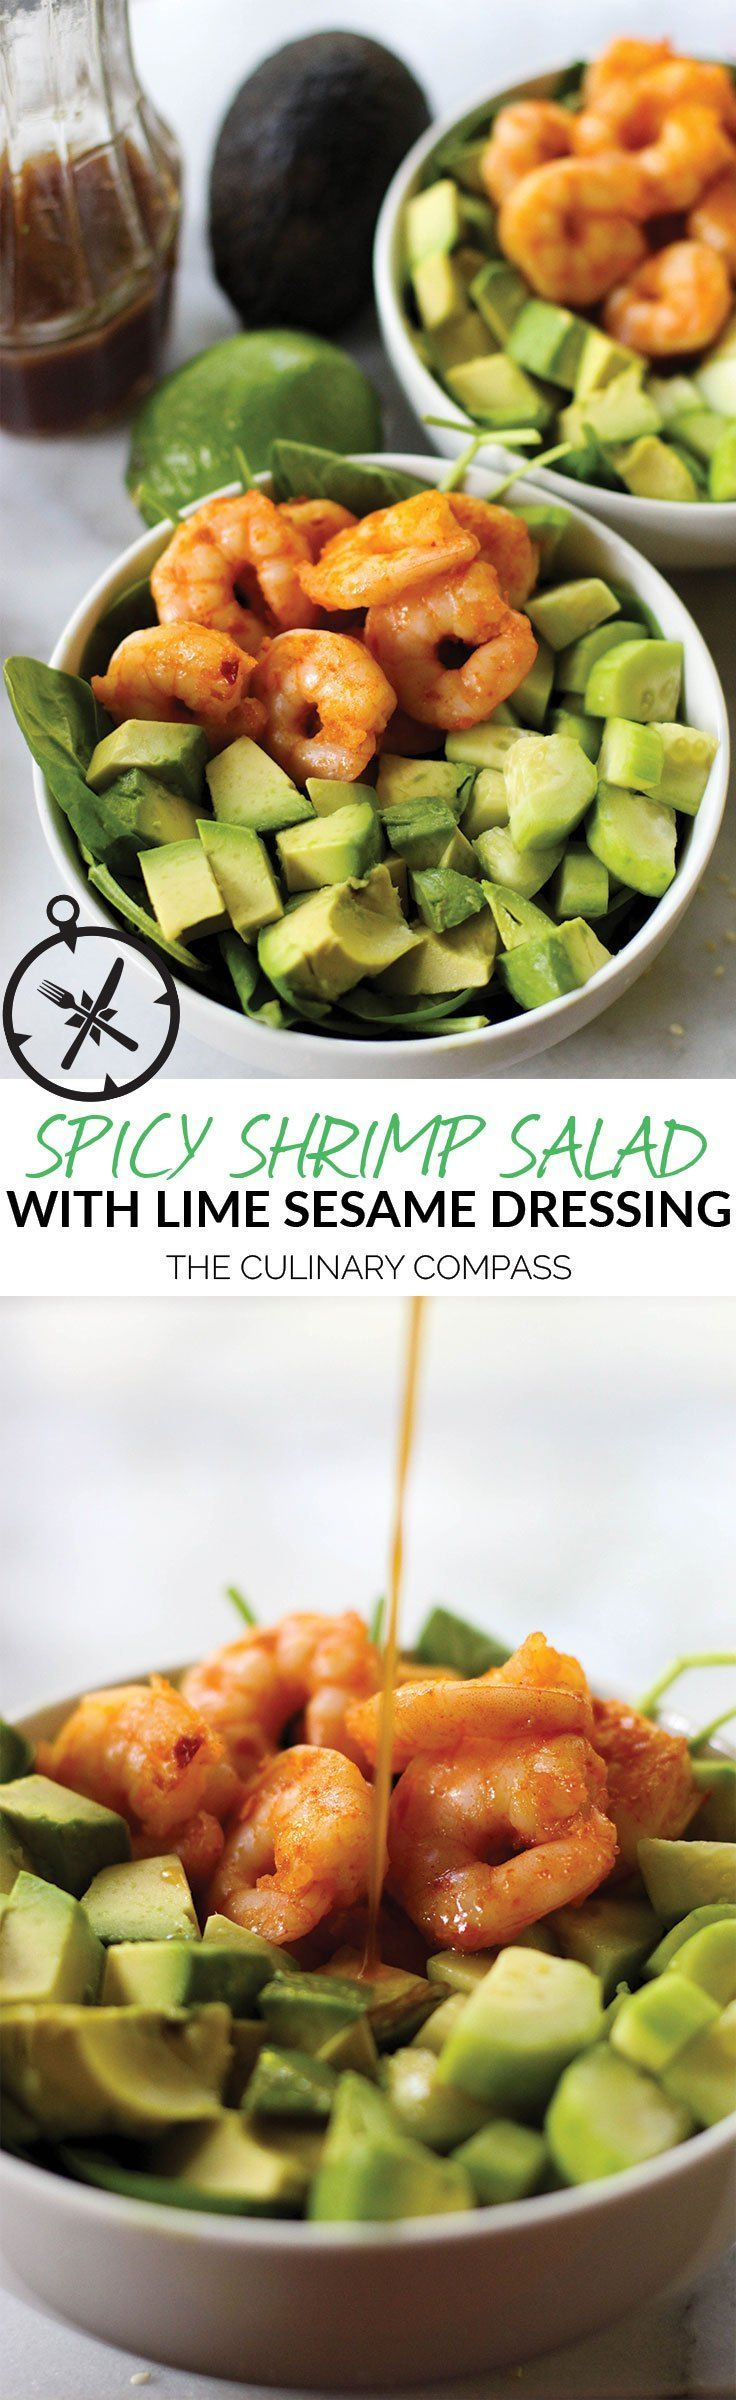 This Spicy Shrimp Salad with Lime Sesame Dressing is so refreshing and simple to…